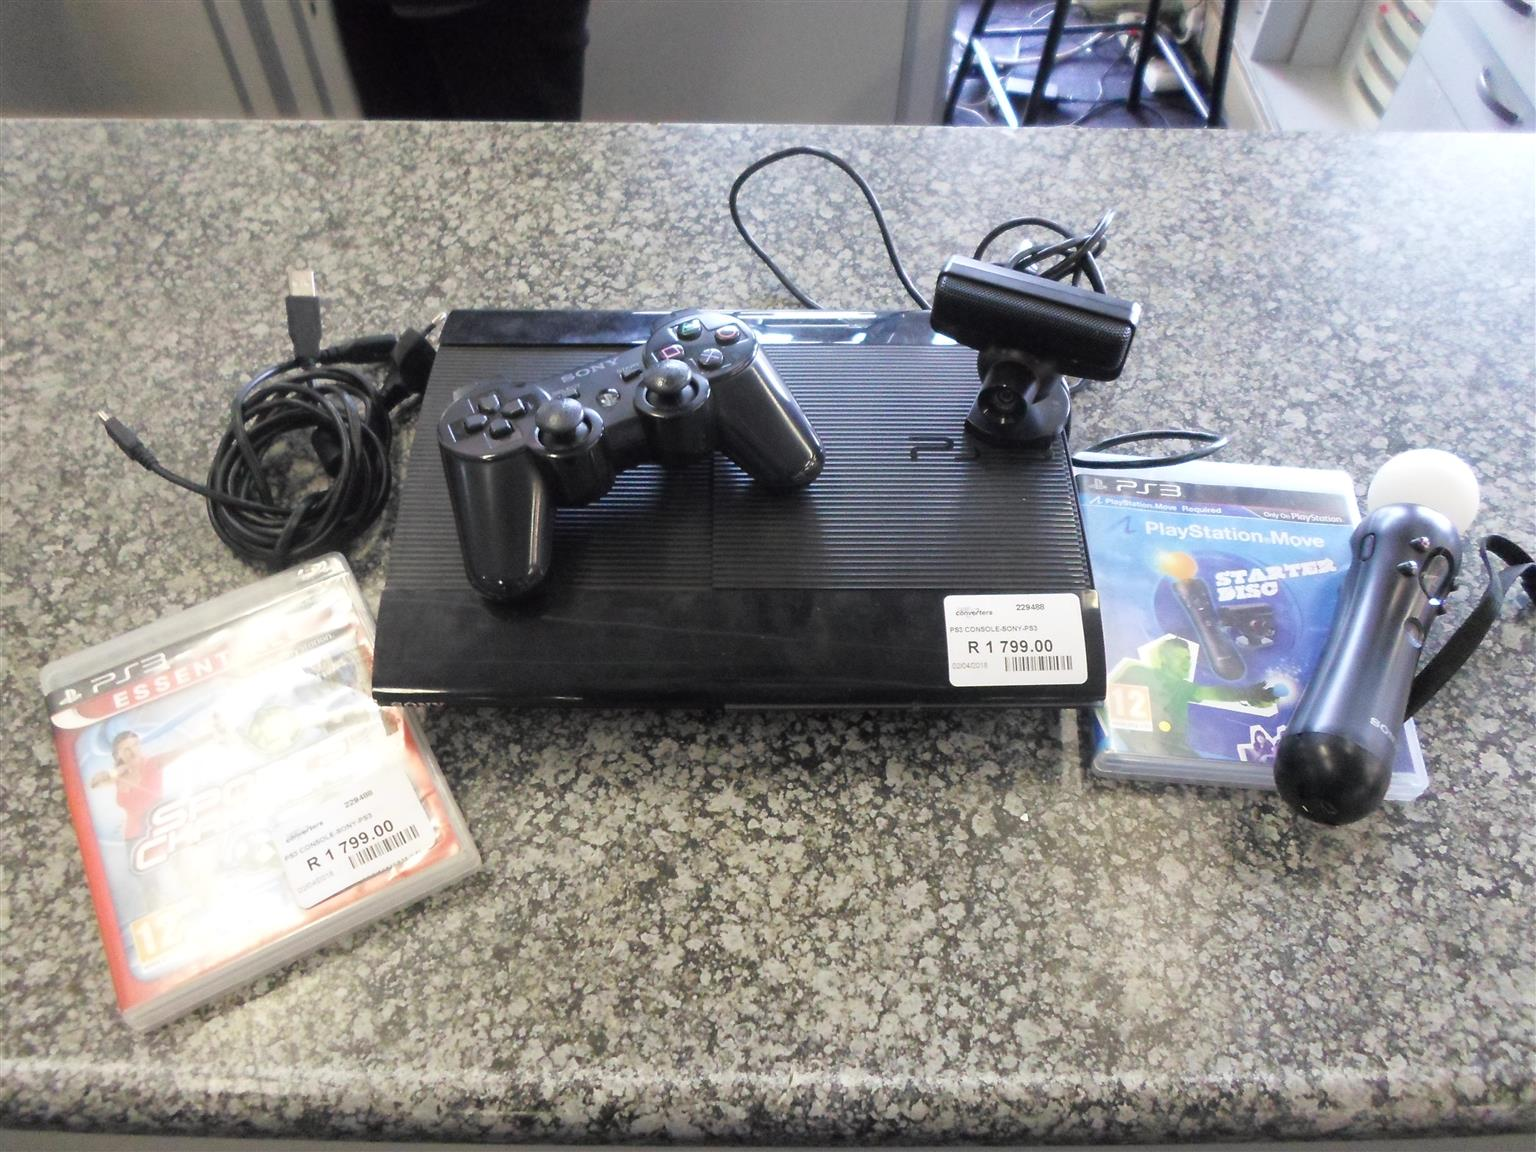 Playstation 3 + Accessories